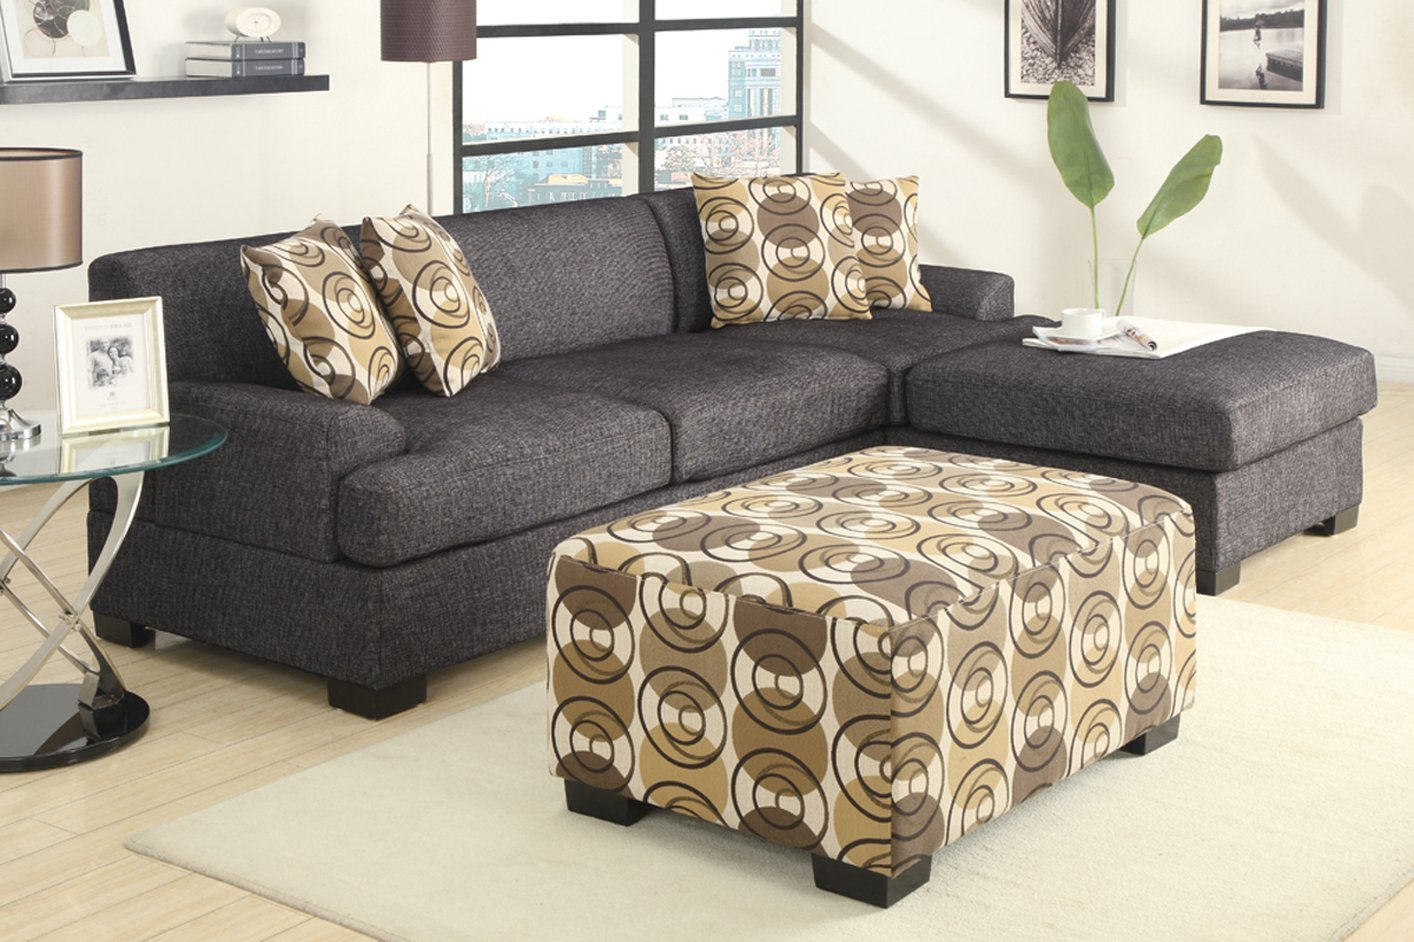 ... Montreal V Grey Fabric Loveseat ... : loveseat sectional sofa - Sectionals, Sofas & Couches